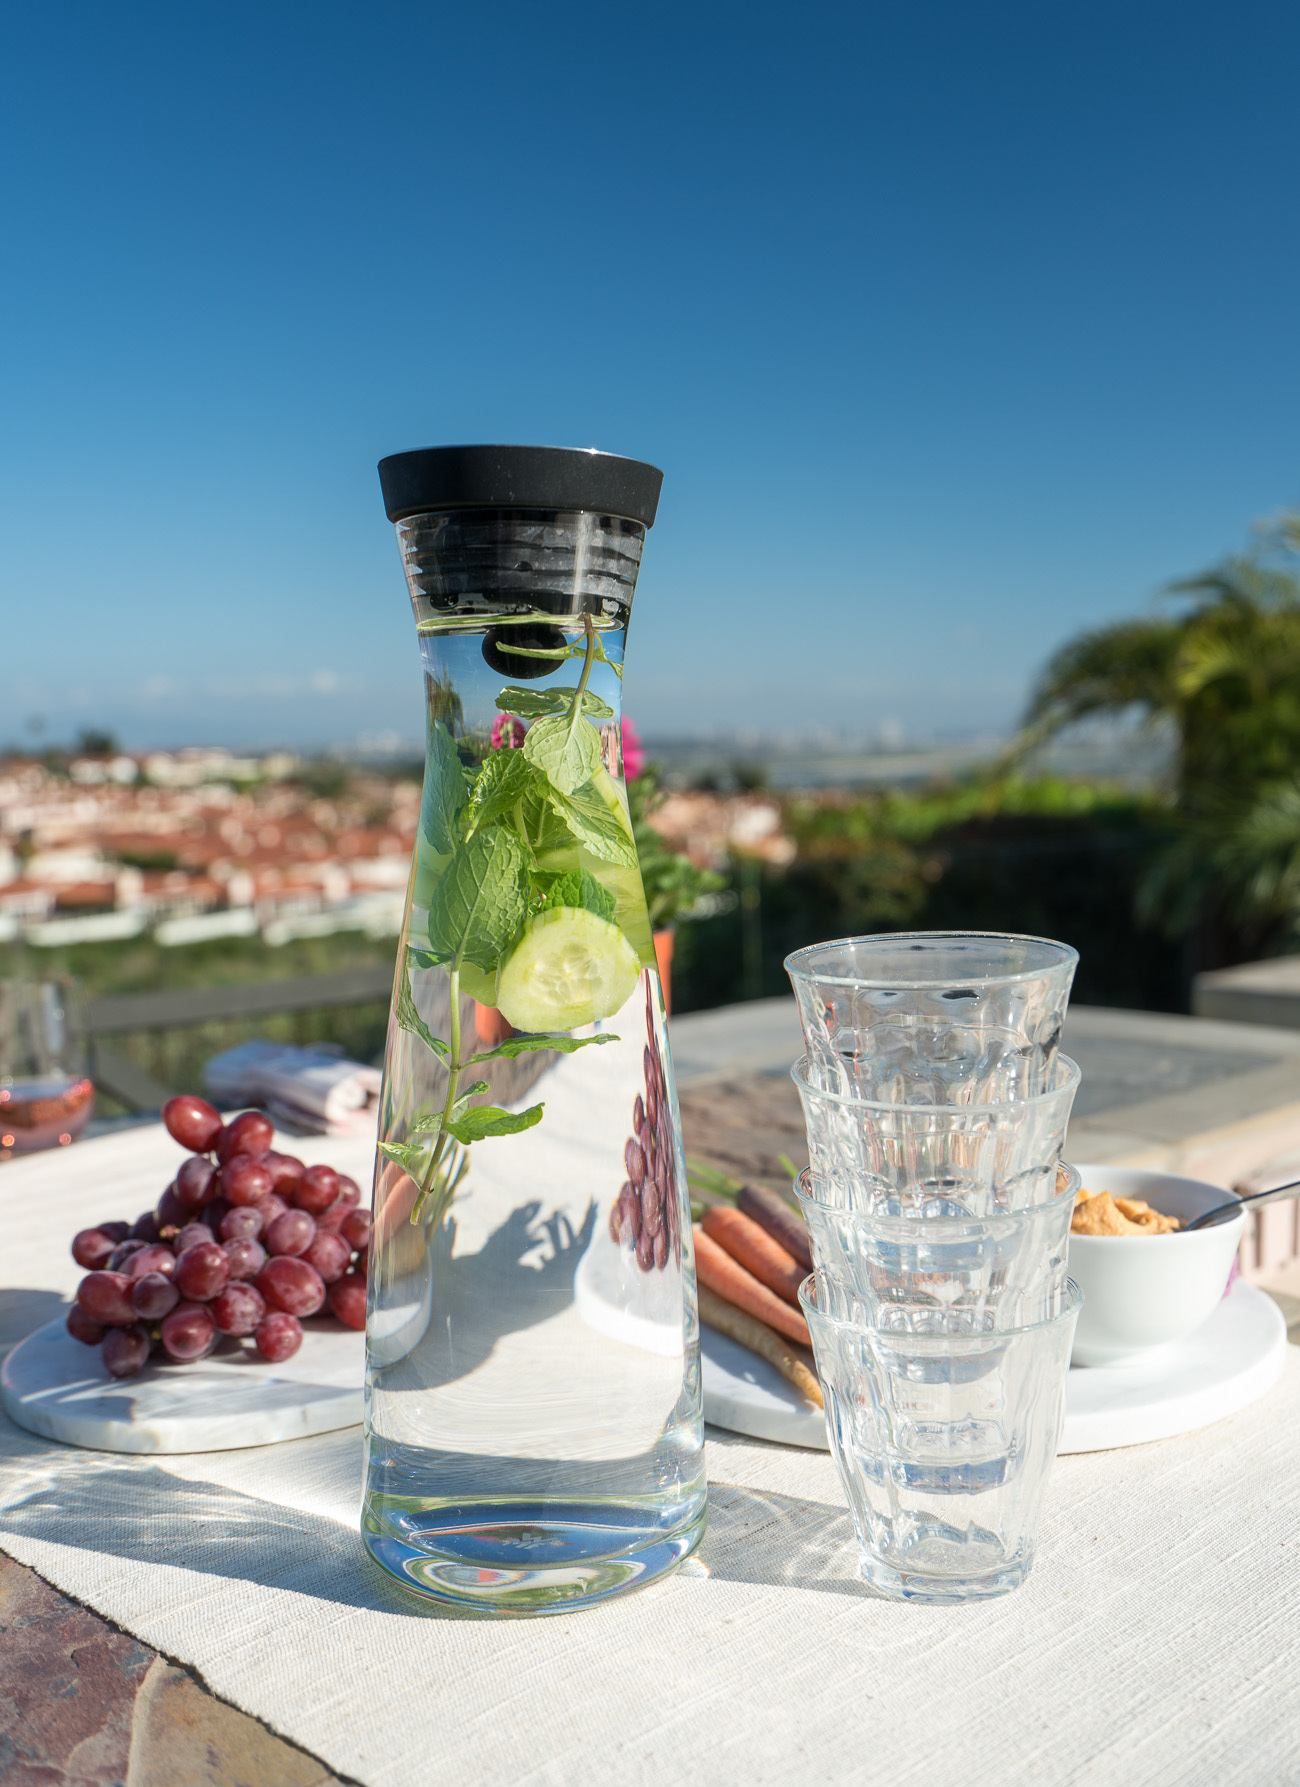 Serve flavored water in a pitcher or carafe instead of bottled water when you entertain.